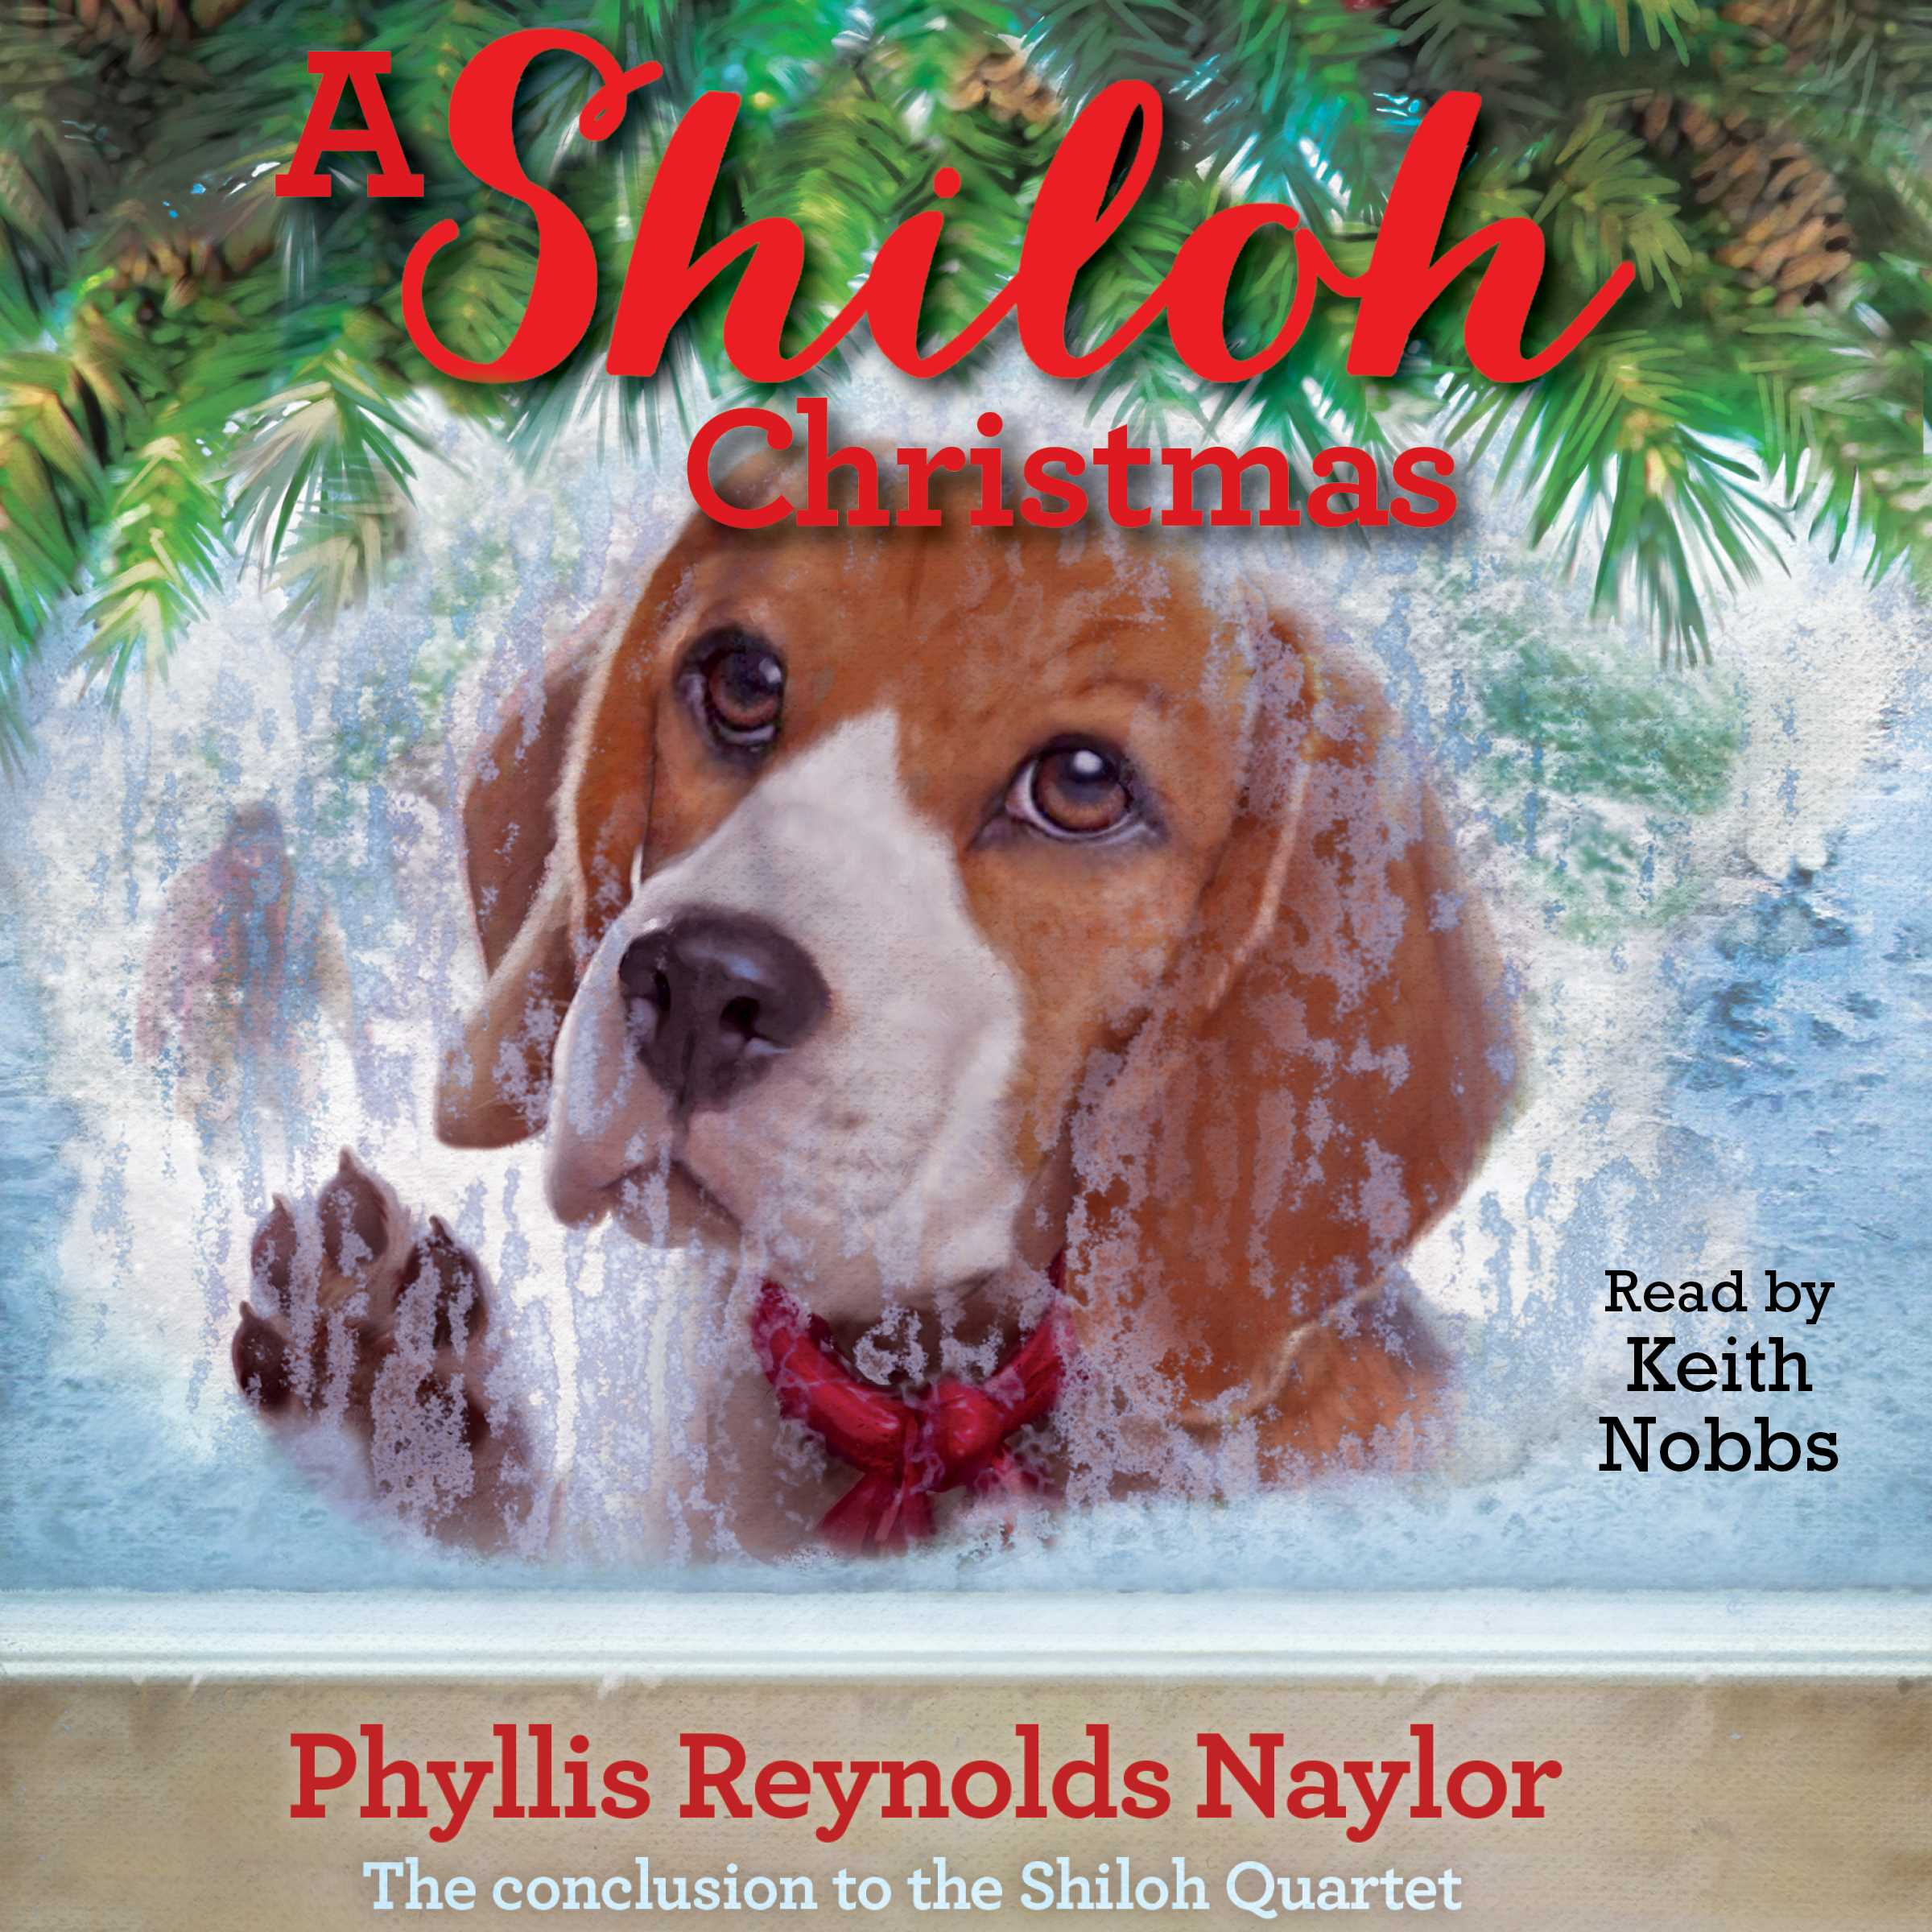 A shiloh christmas 9781442391390 hr